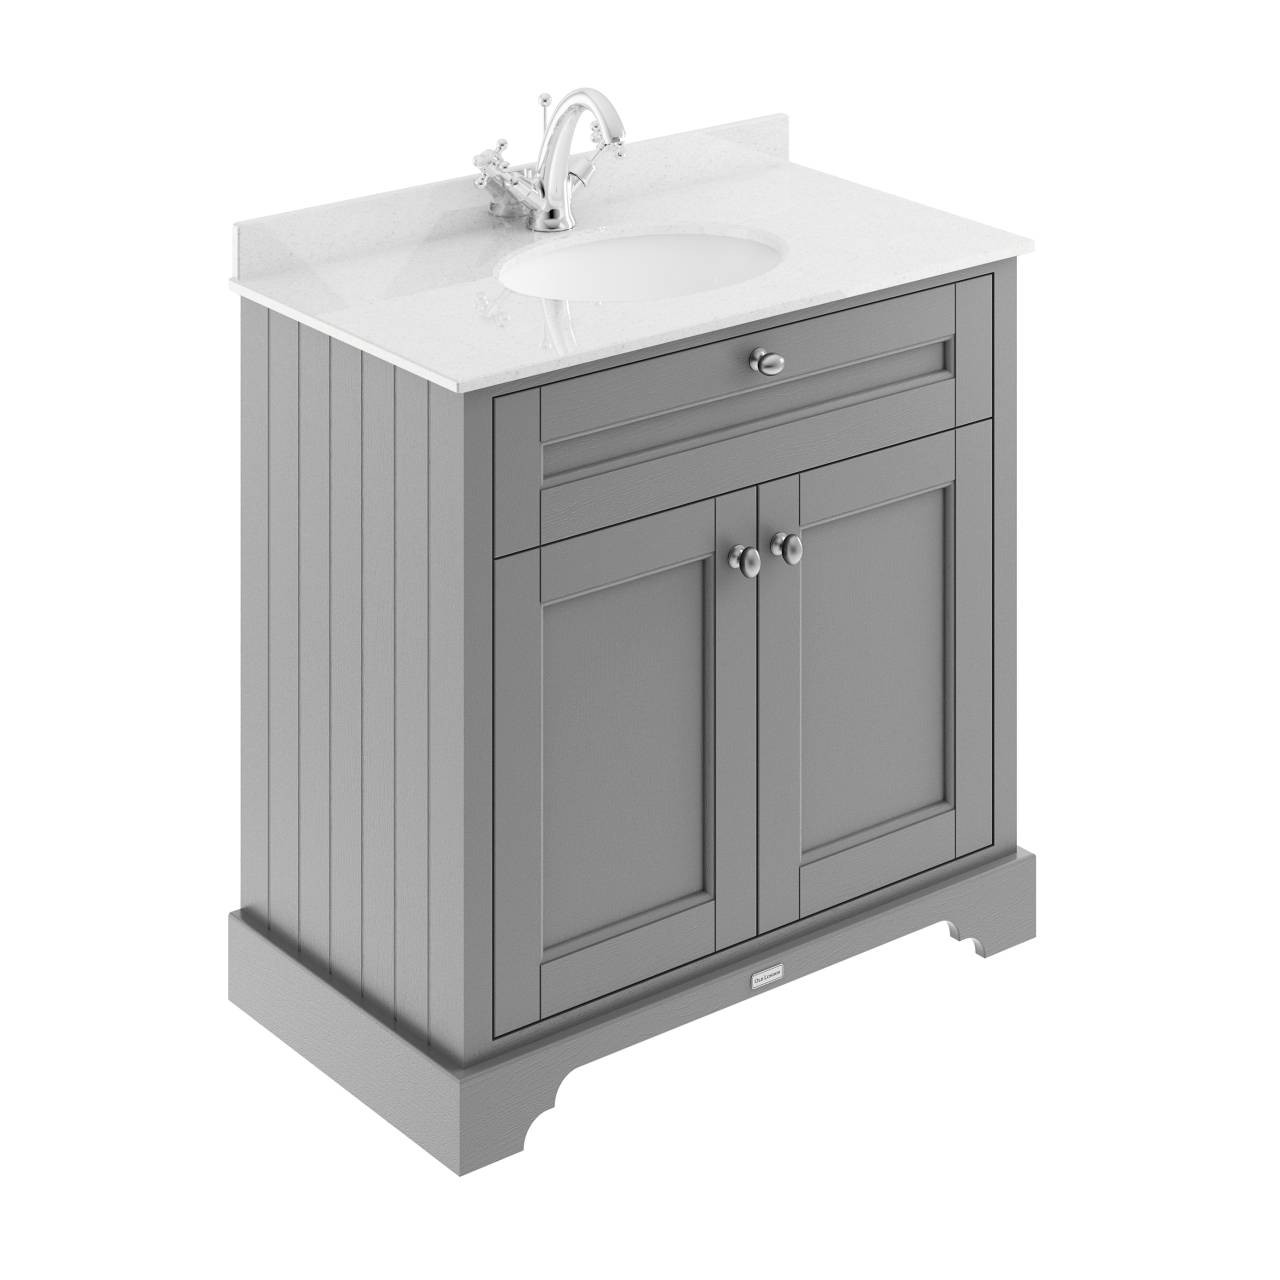 Old London Storm Grey 800mm 2 Door Vanity Unit with White Marble Top and Basin with 1 Tap Hole - LOF228